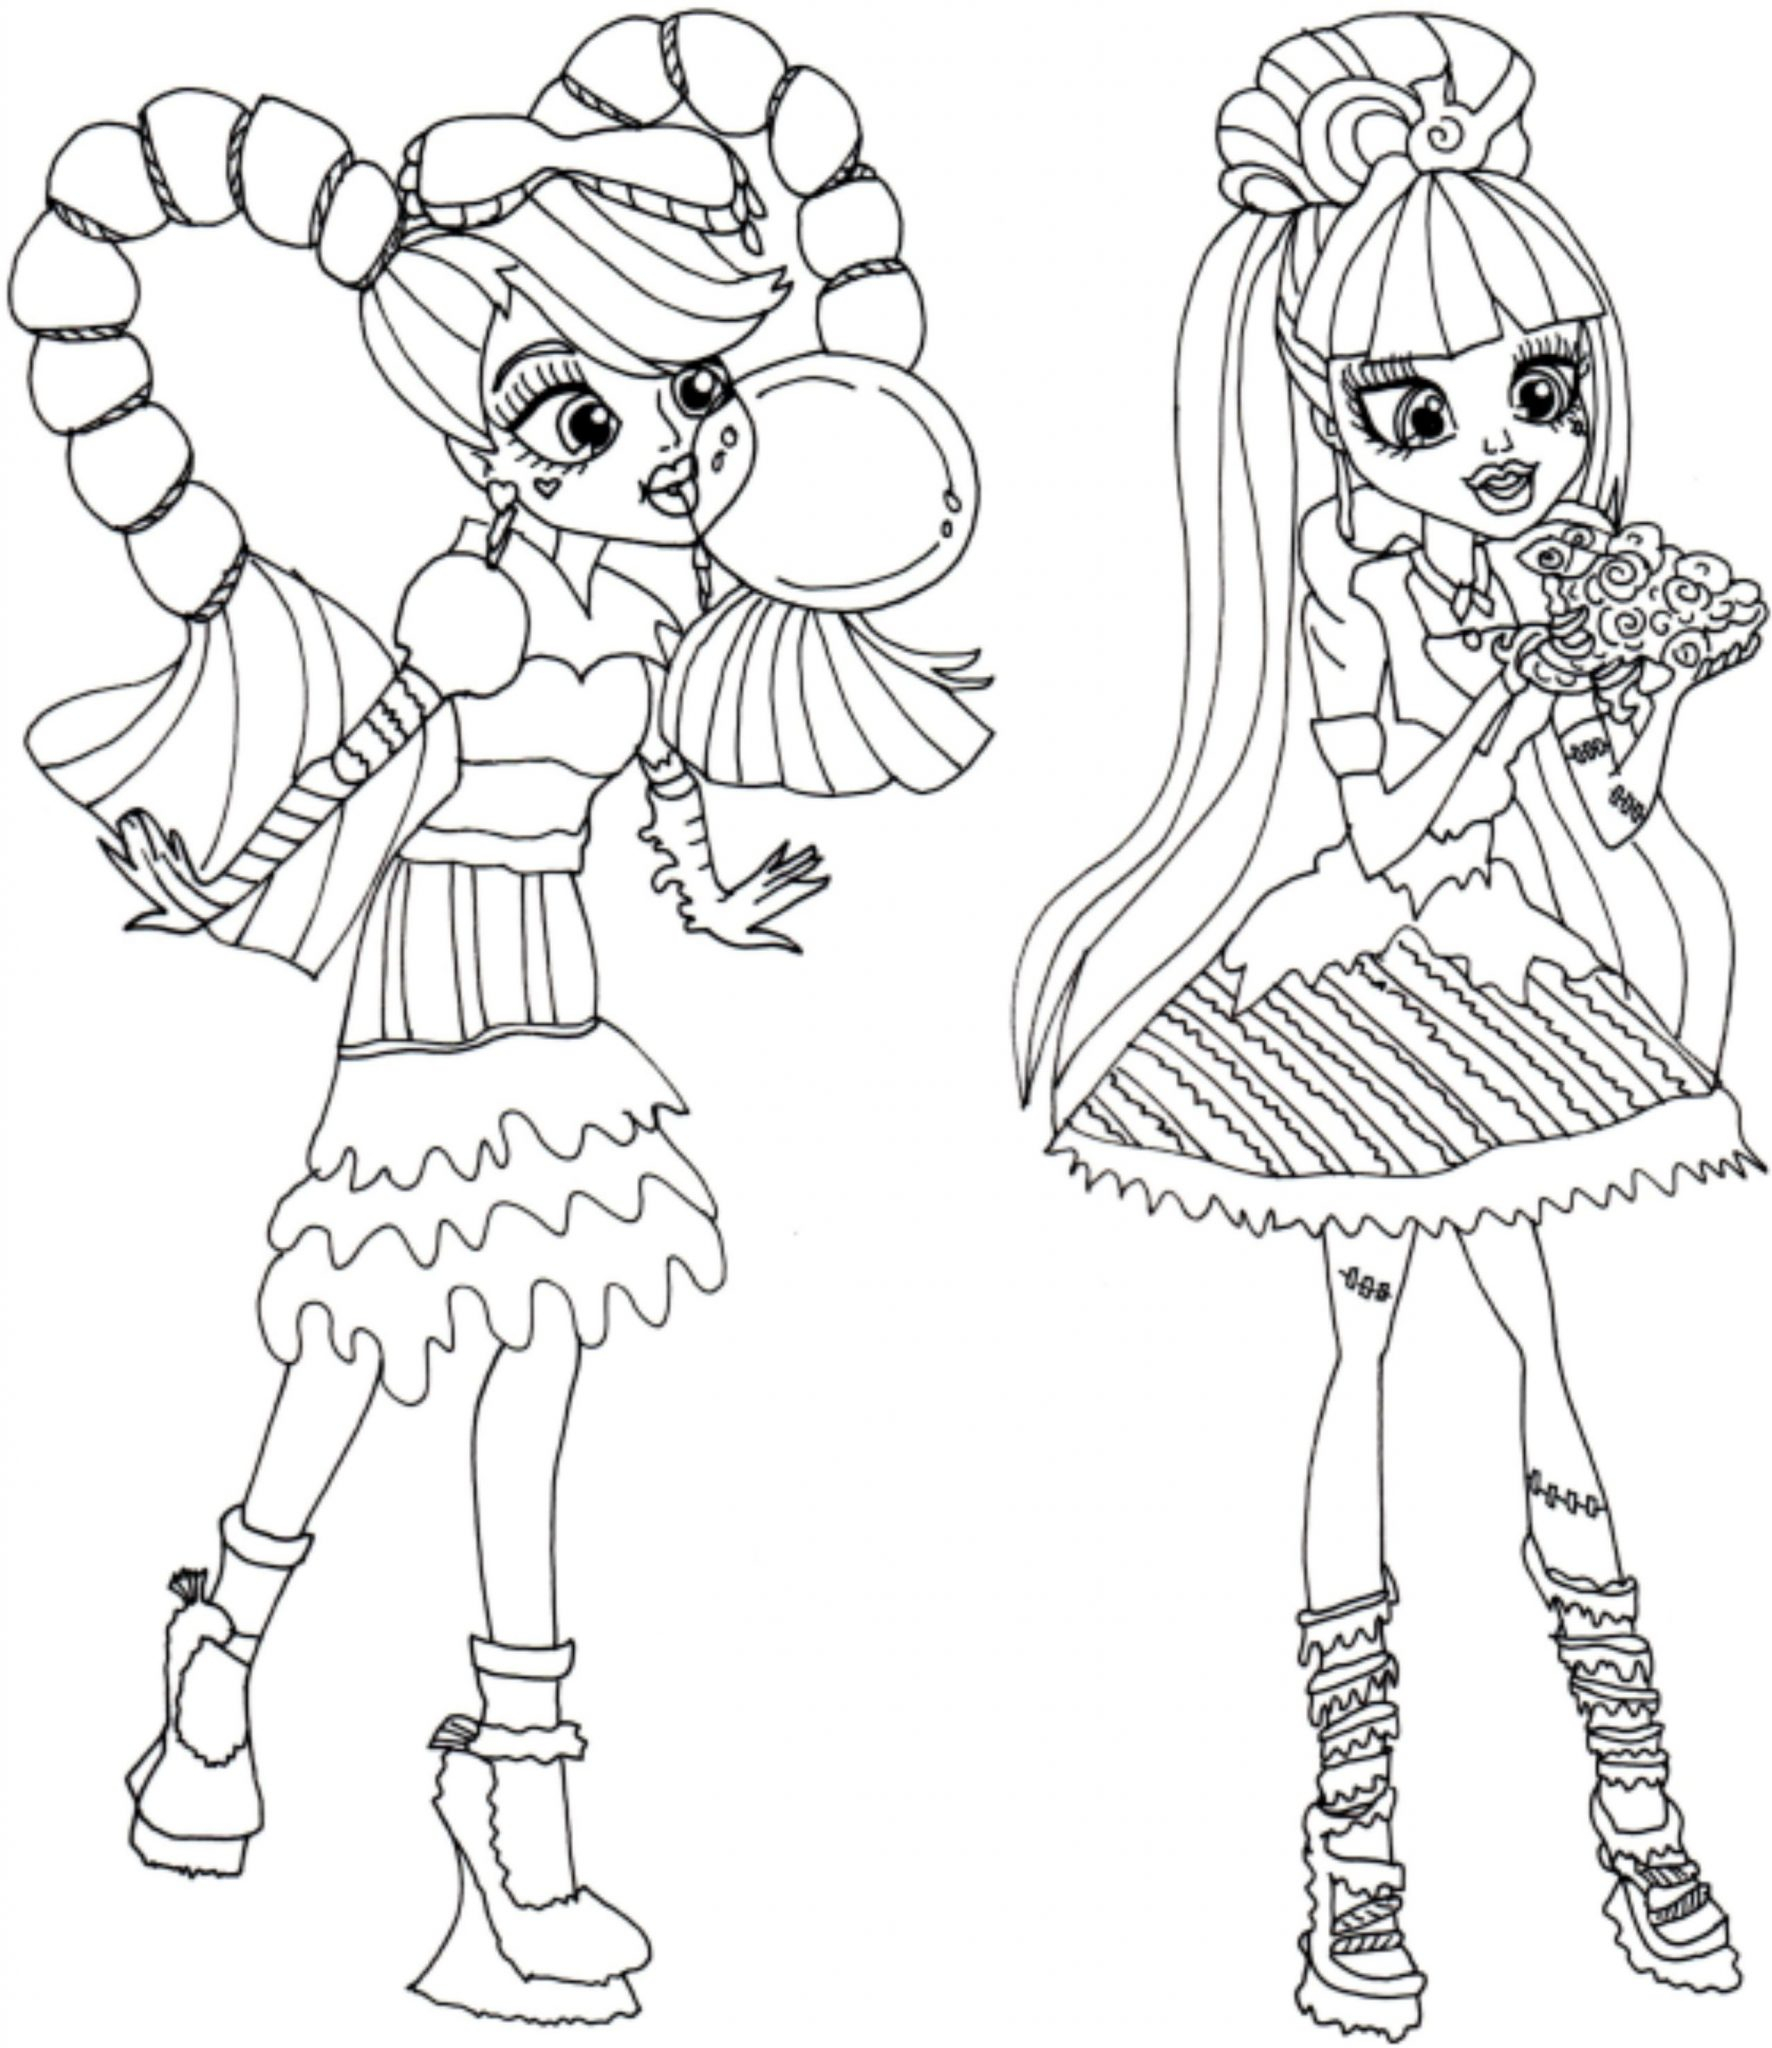 Inspiration Free Printable Monster High Coloring Pages Brand Boo Download Of Monster High Baby Coloring Pages 012 to Coloring Pages Collection